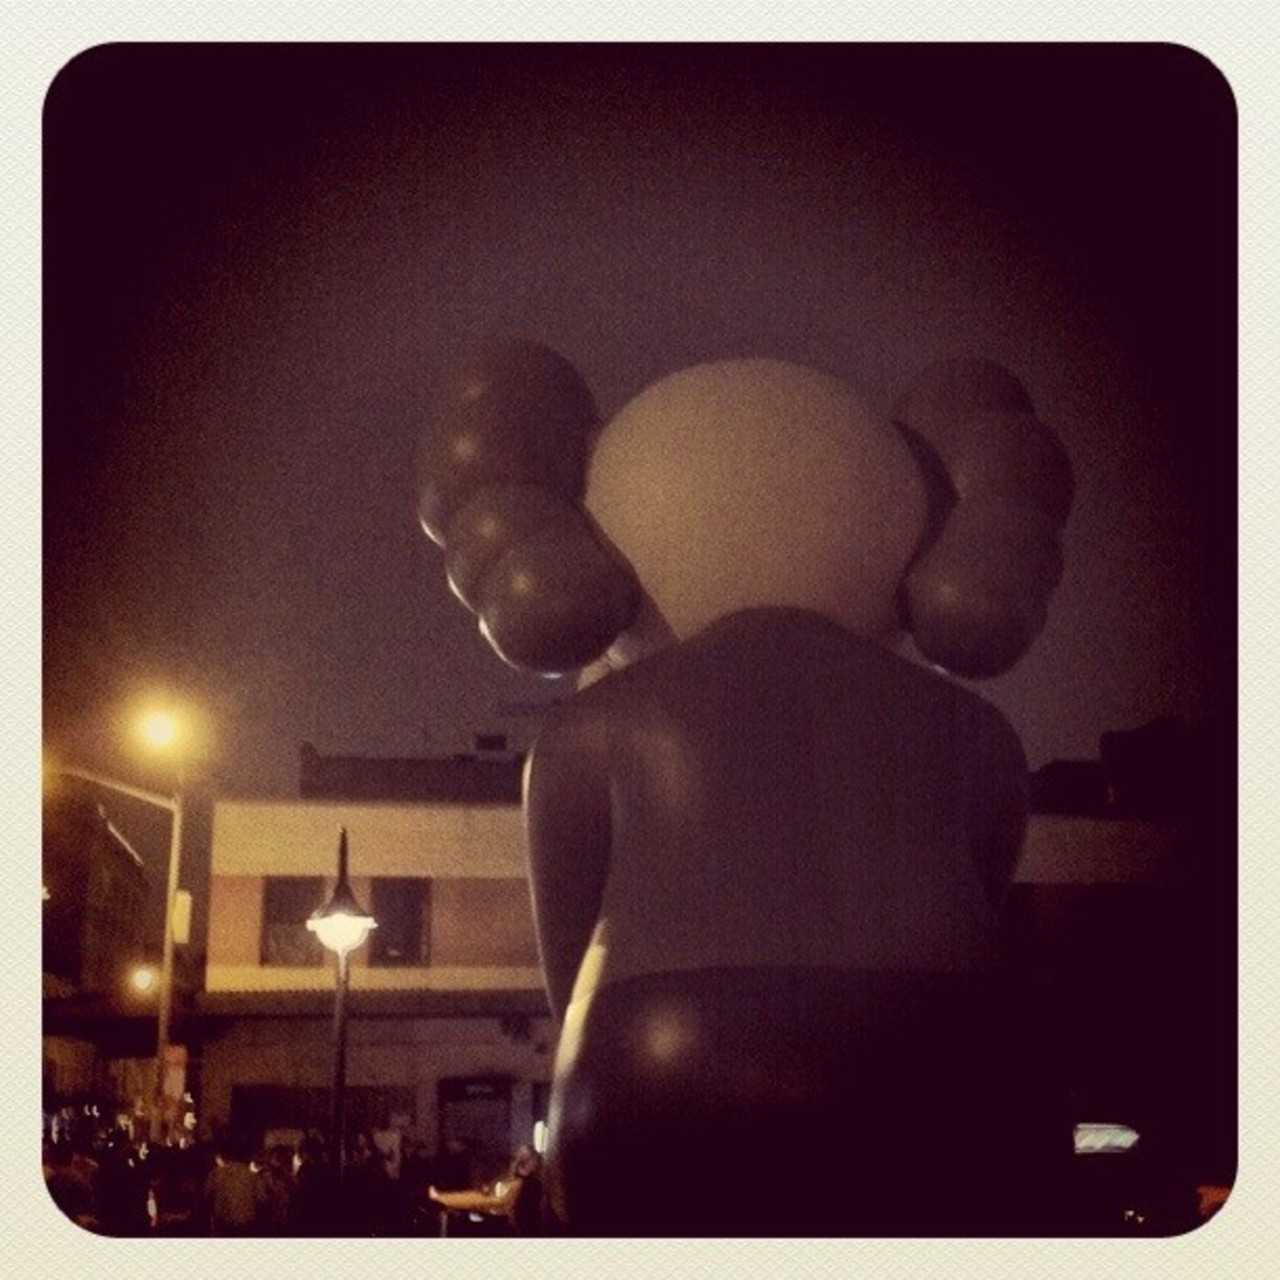 Like this photo of the KAWS installation in front of The Standard, New York? Vote for it and win $200!